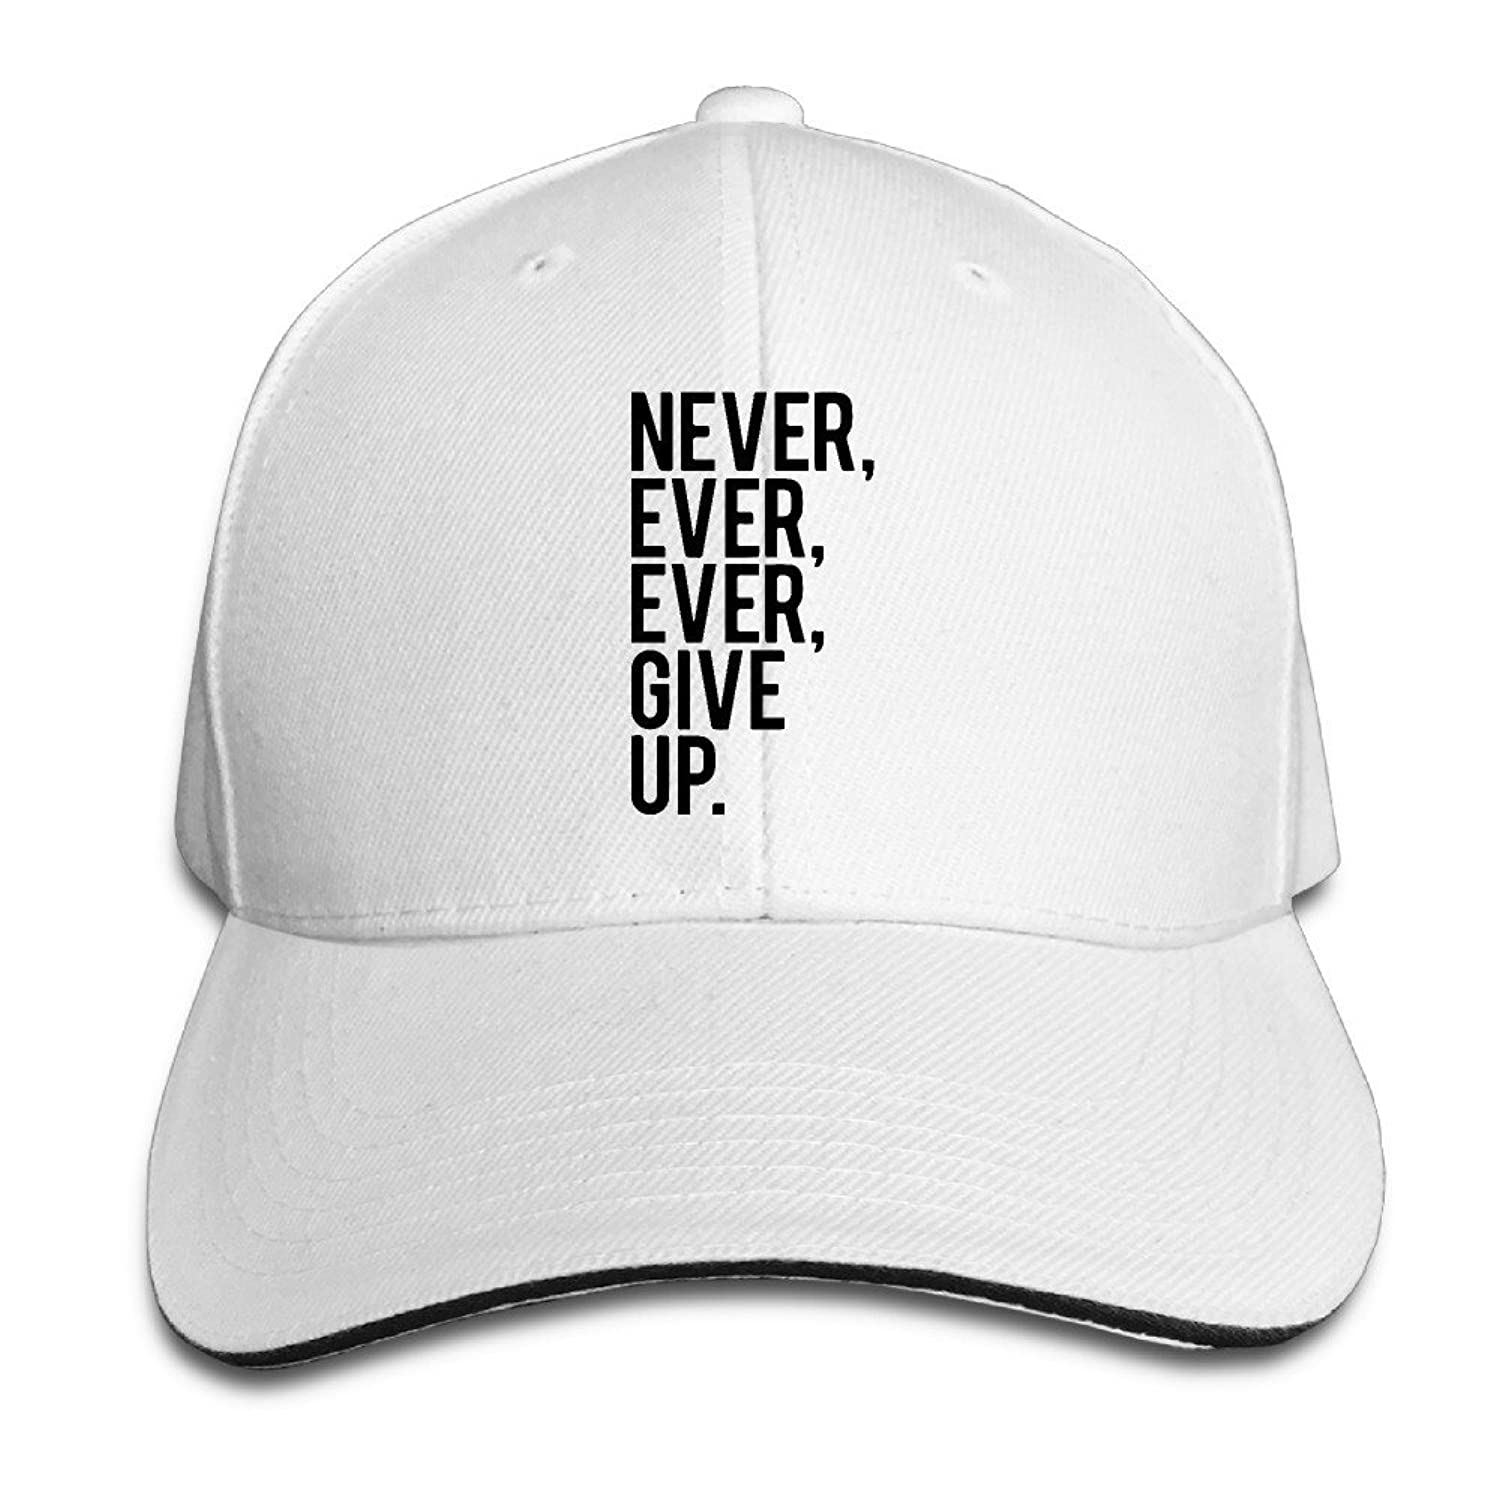 FOODE Never Ever Ever Give Up Peaked Baseball Cap Snapback Hats